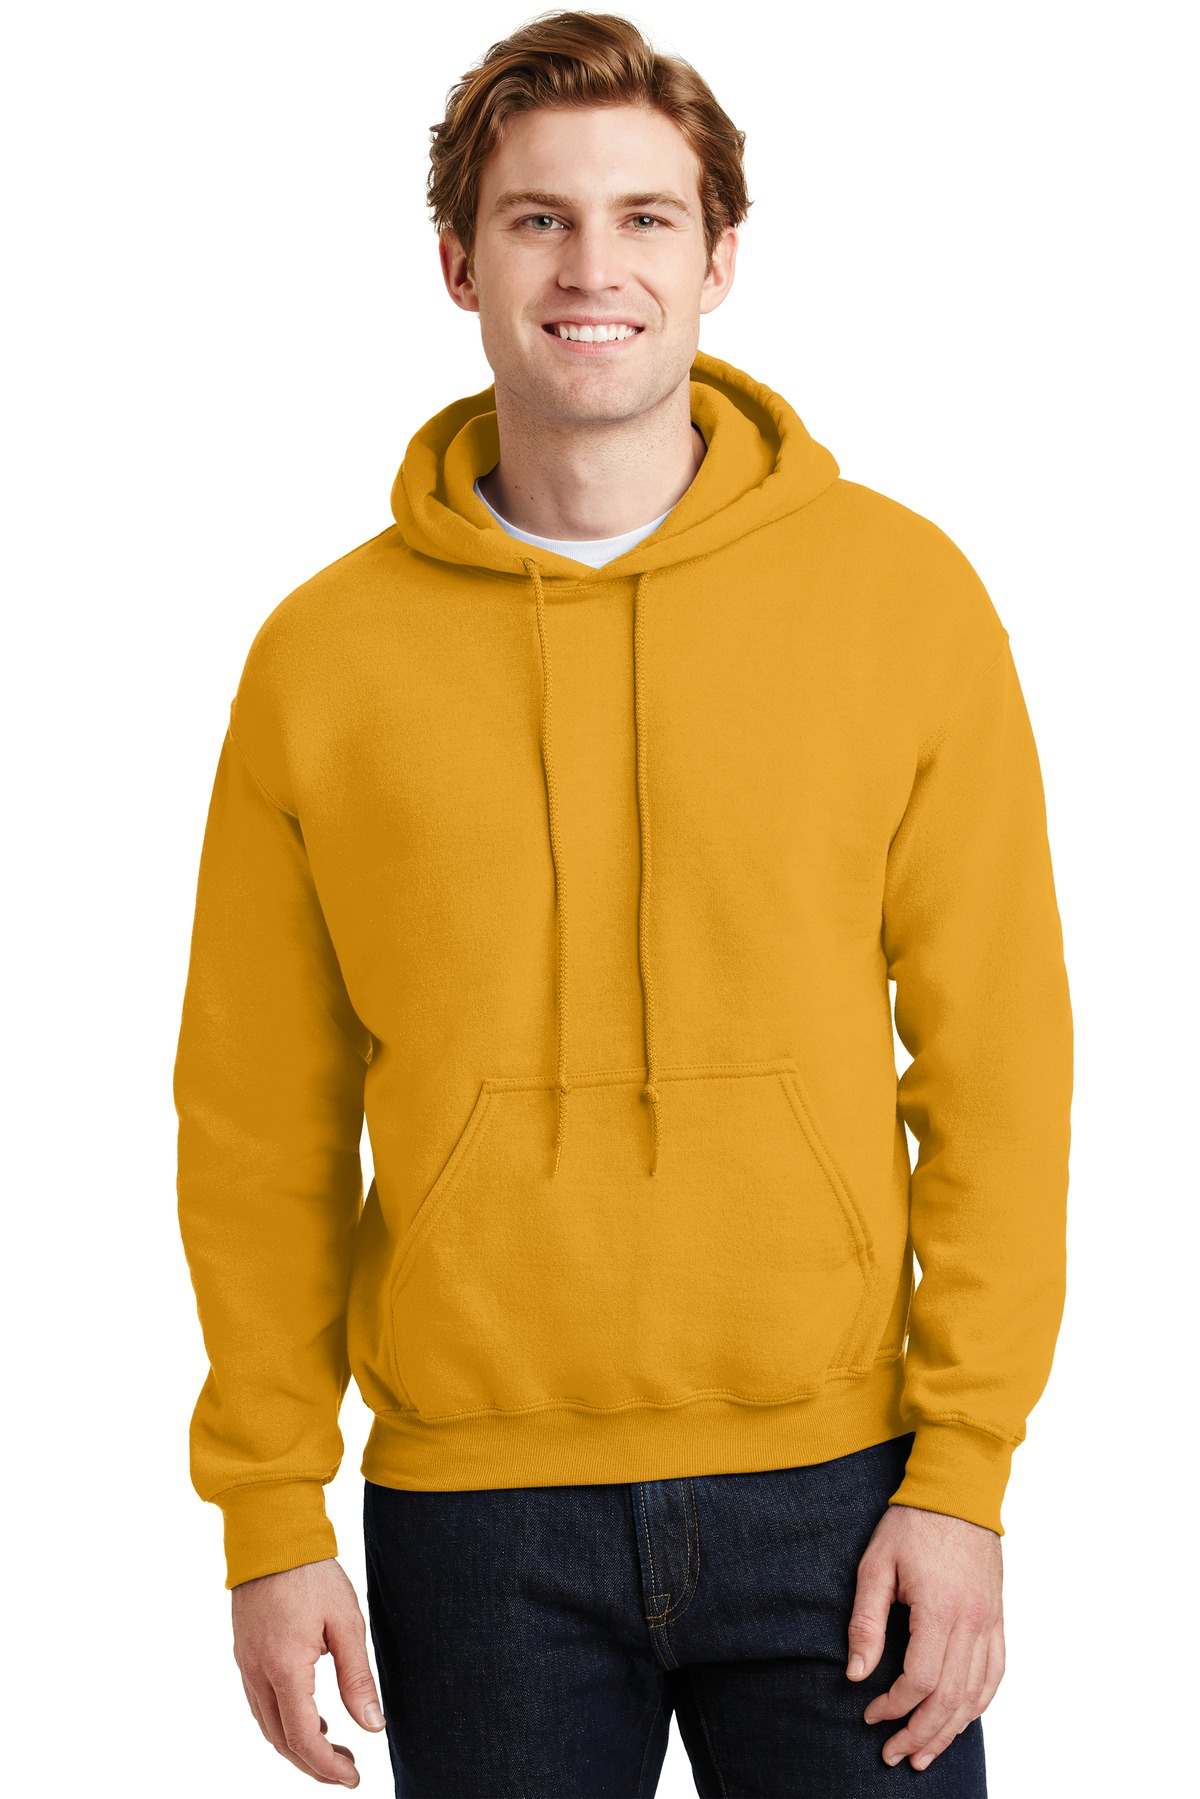 Gildan ®  - Heavy Blend ™  Hooded Sweatshirt.  18500 - Gold